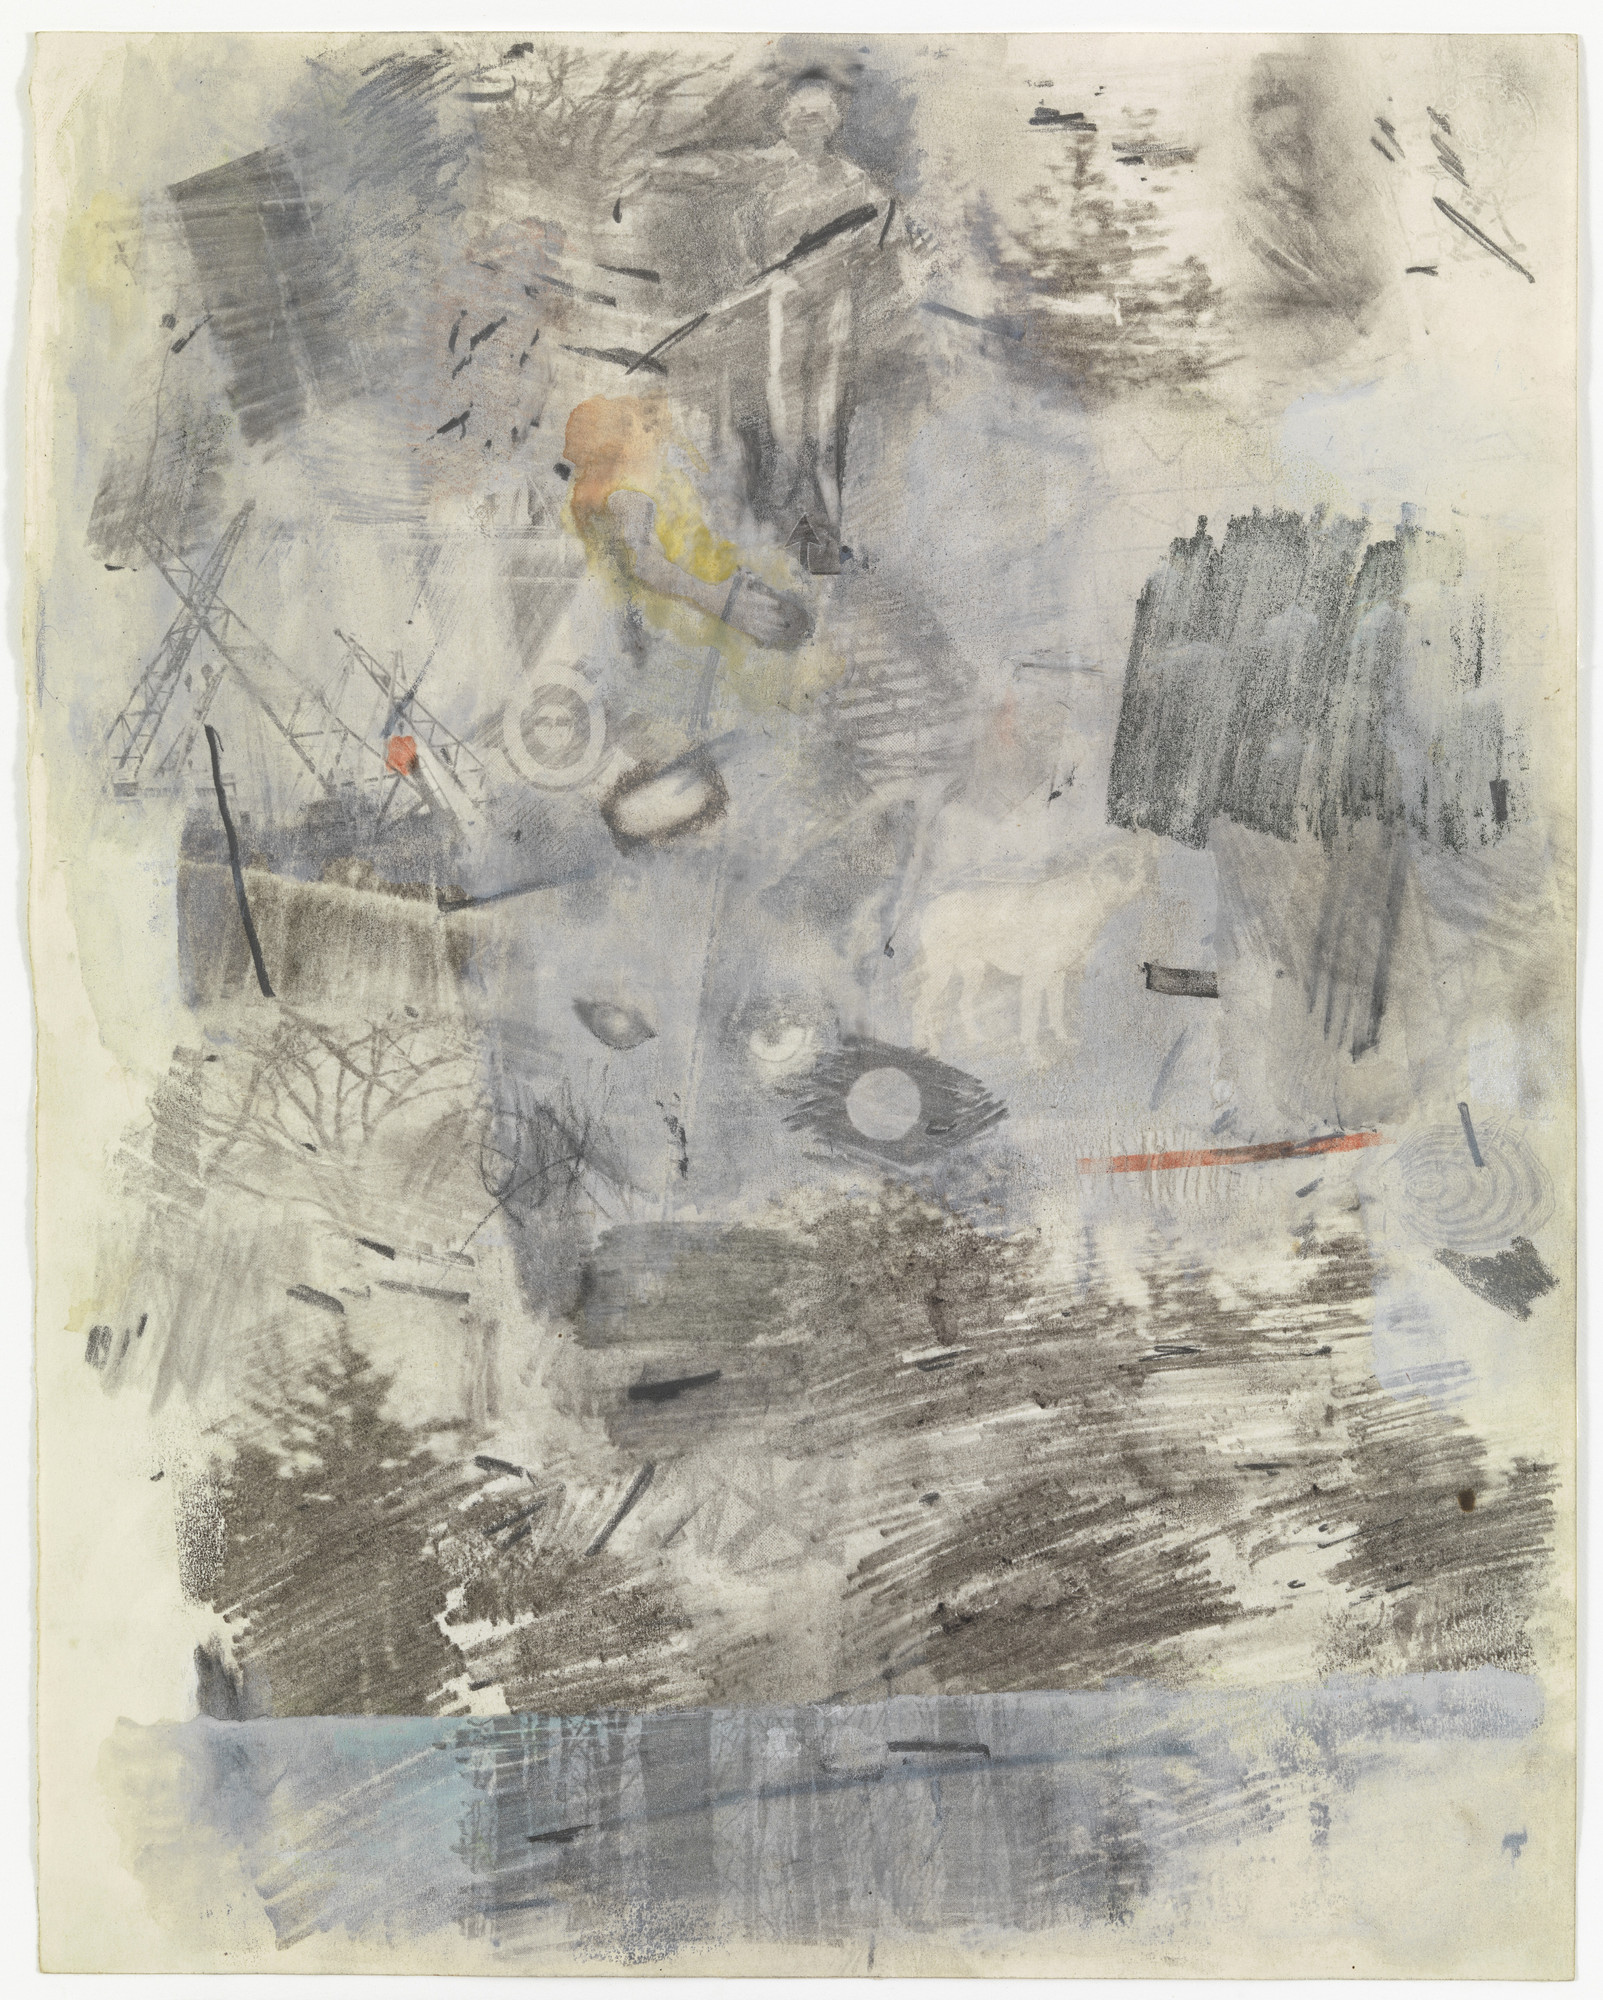 Robert Rauschenberg. Canto I: The Dark Wood of Error from the series Thirty-Four Illustrations for Dante's Inferno. (1958)